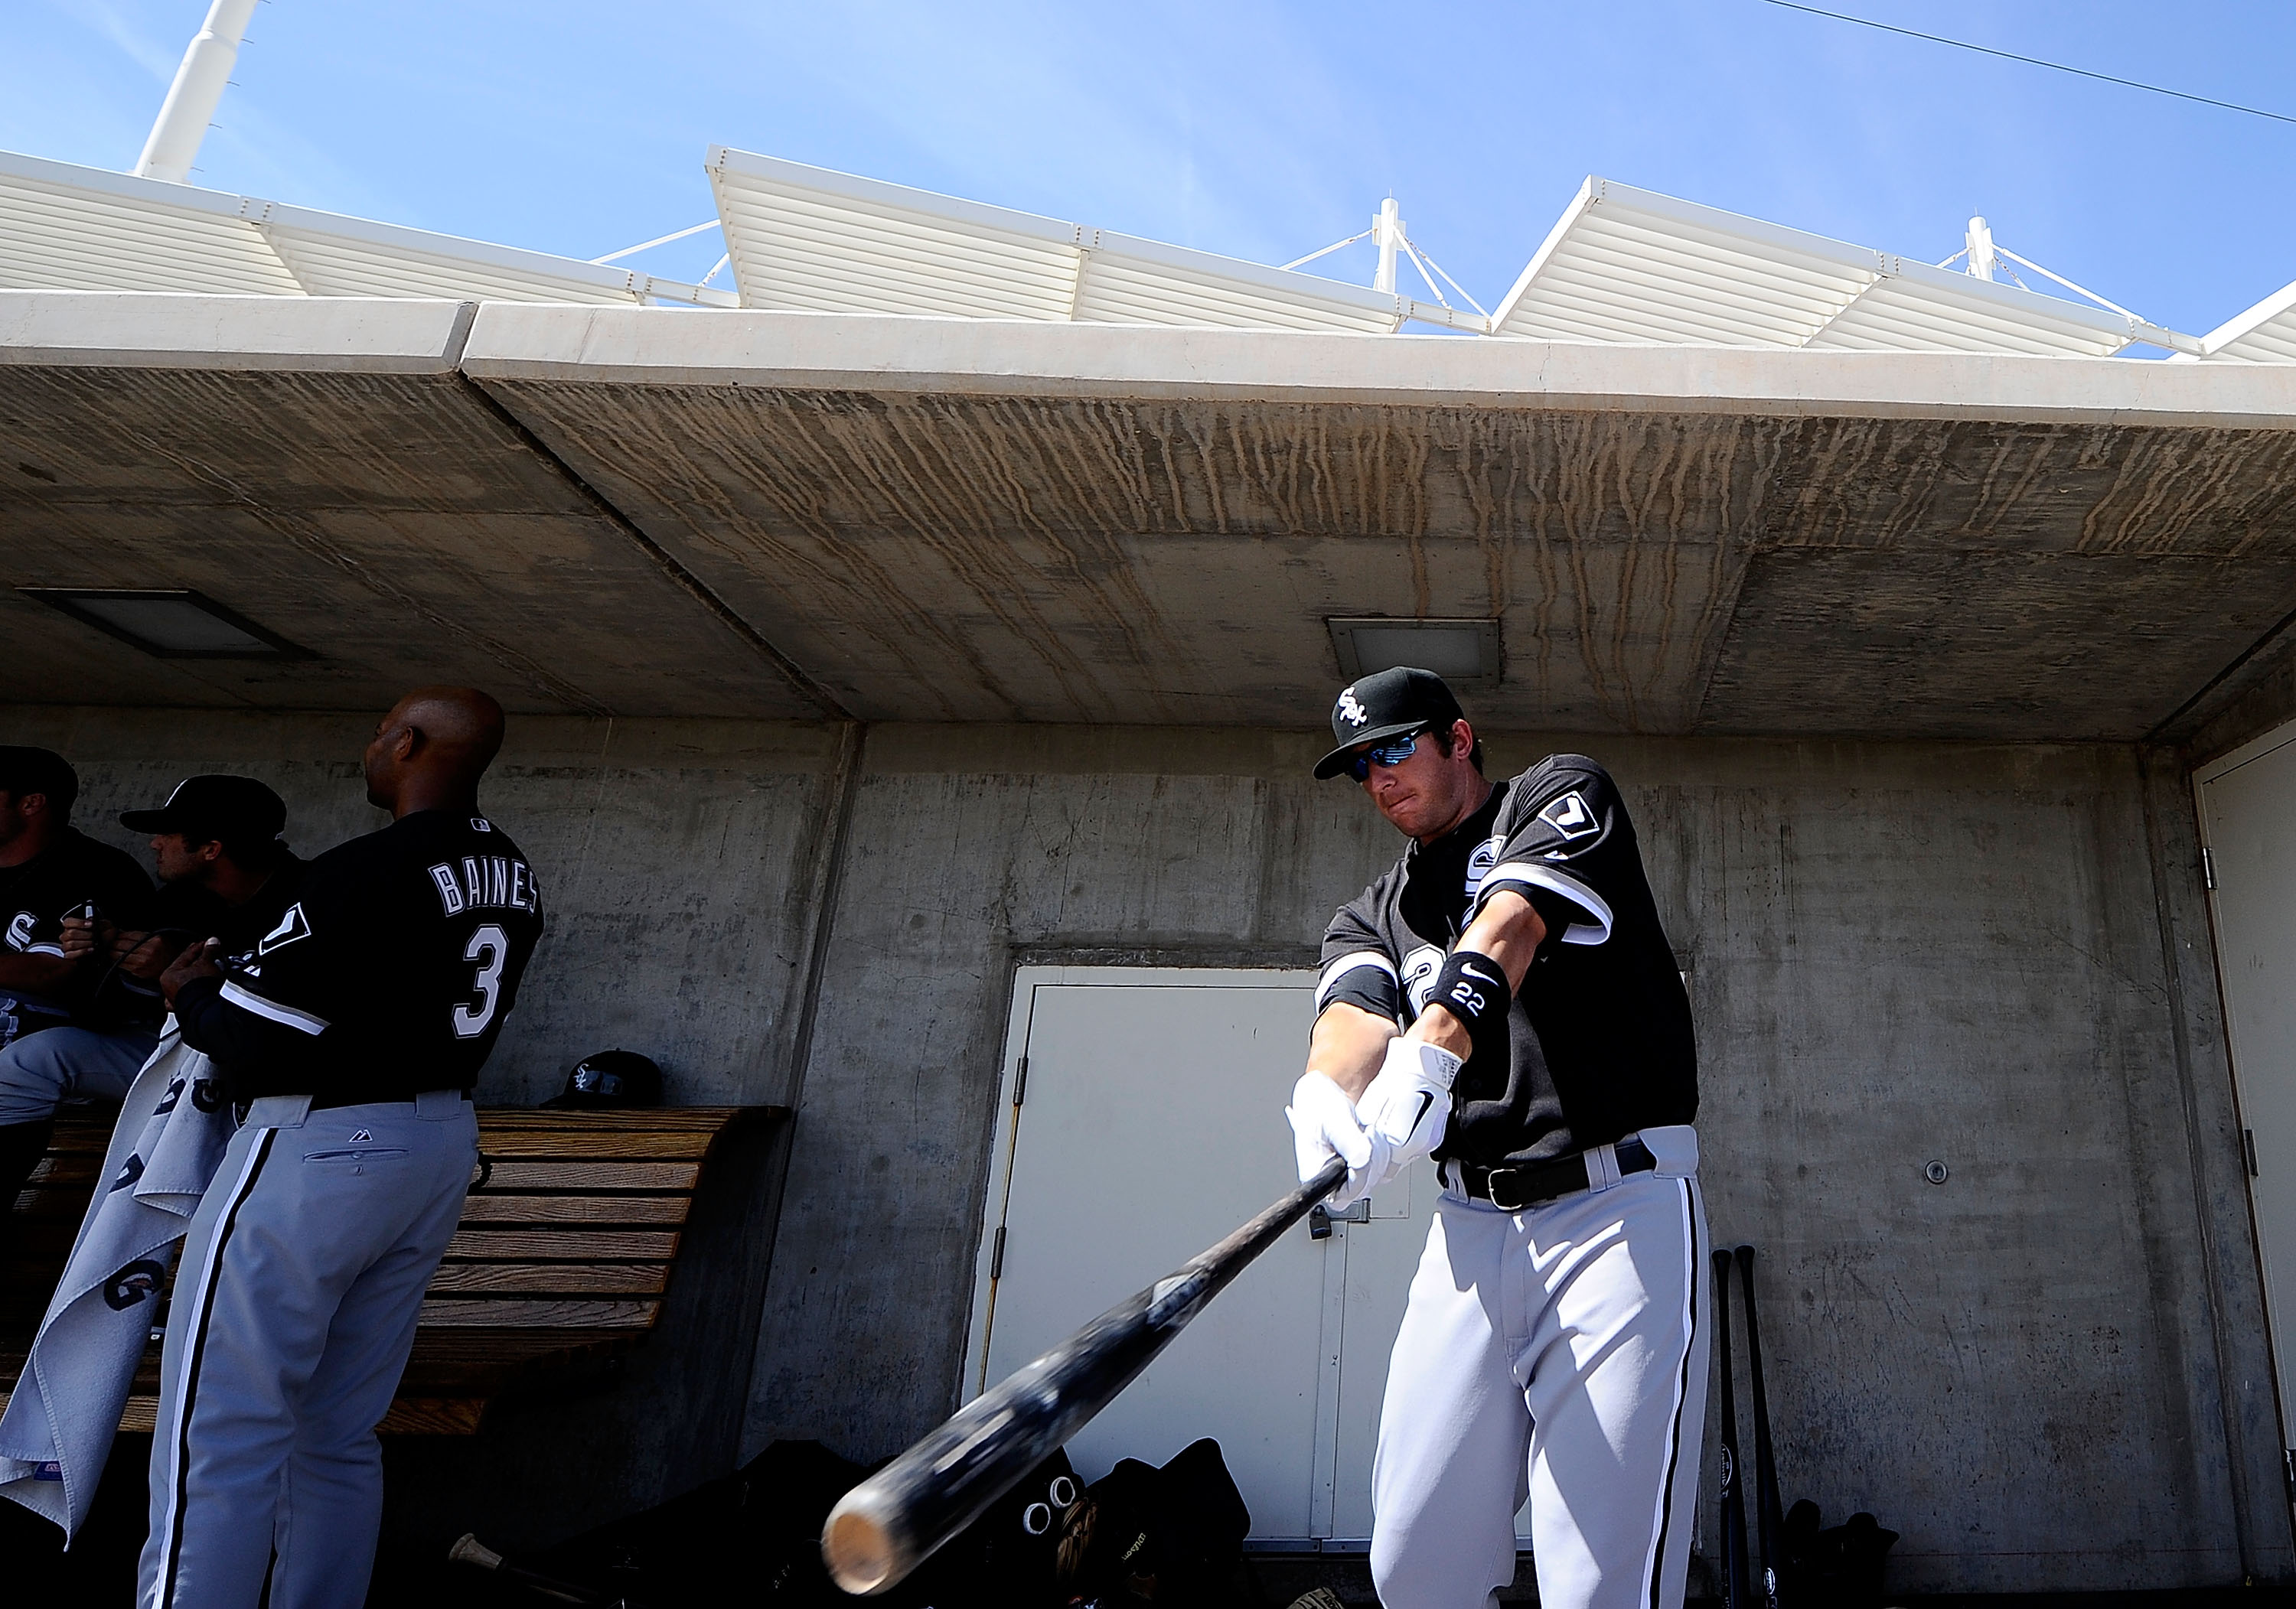 PHOENIX, AZ - MARCH 17:  Brent Morel #22 of the Chicago White Sox warms up before playing against the Milwaukee Brewers during the spring training game at Maryvale Baseball Park on March 17, 2011 in Phoenix, Arizona.  (Photo by Kevork Djansezian/Getty Ima